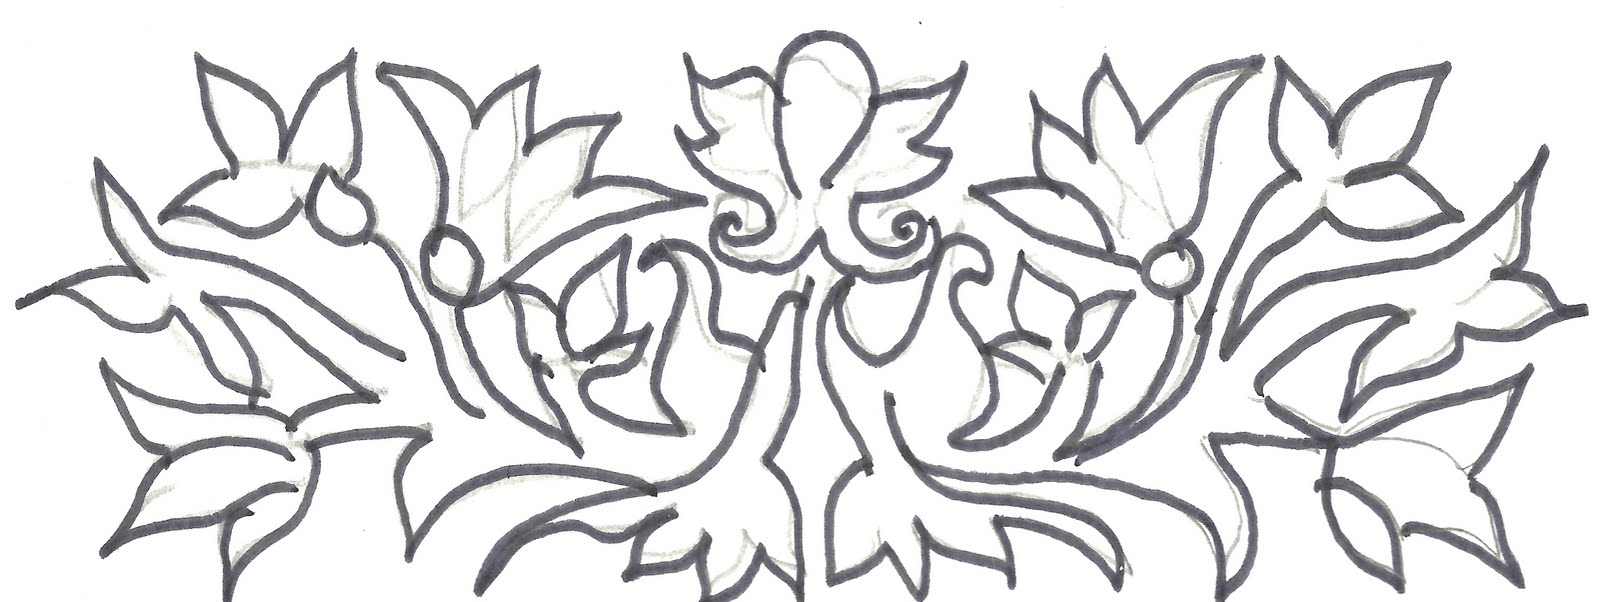 Whatsapp Customer Care Sketch Embroidery Embroidery Sketch Designs